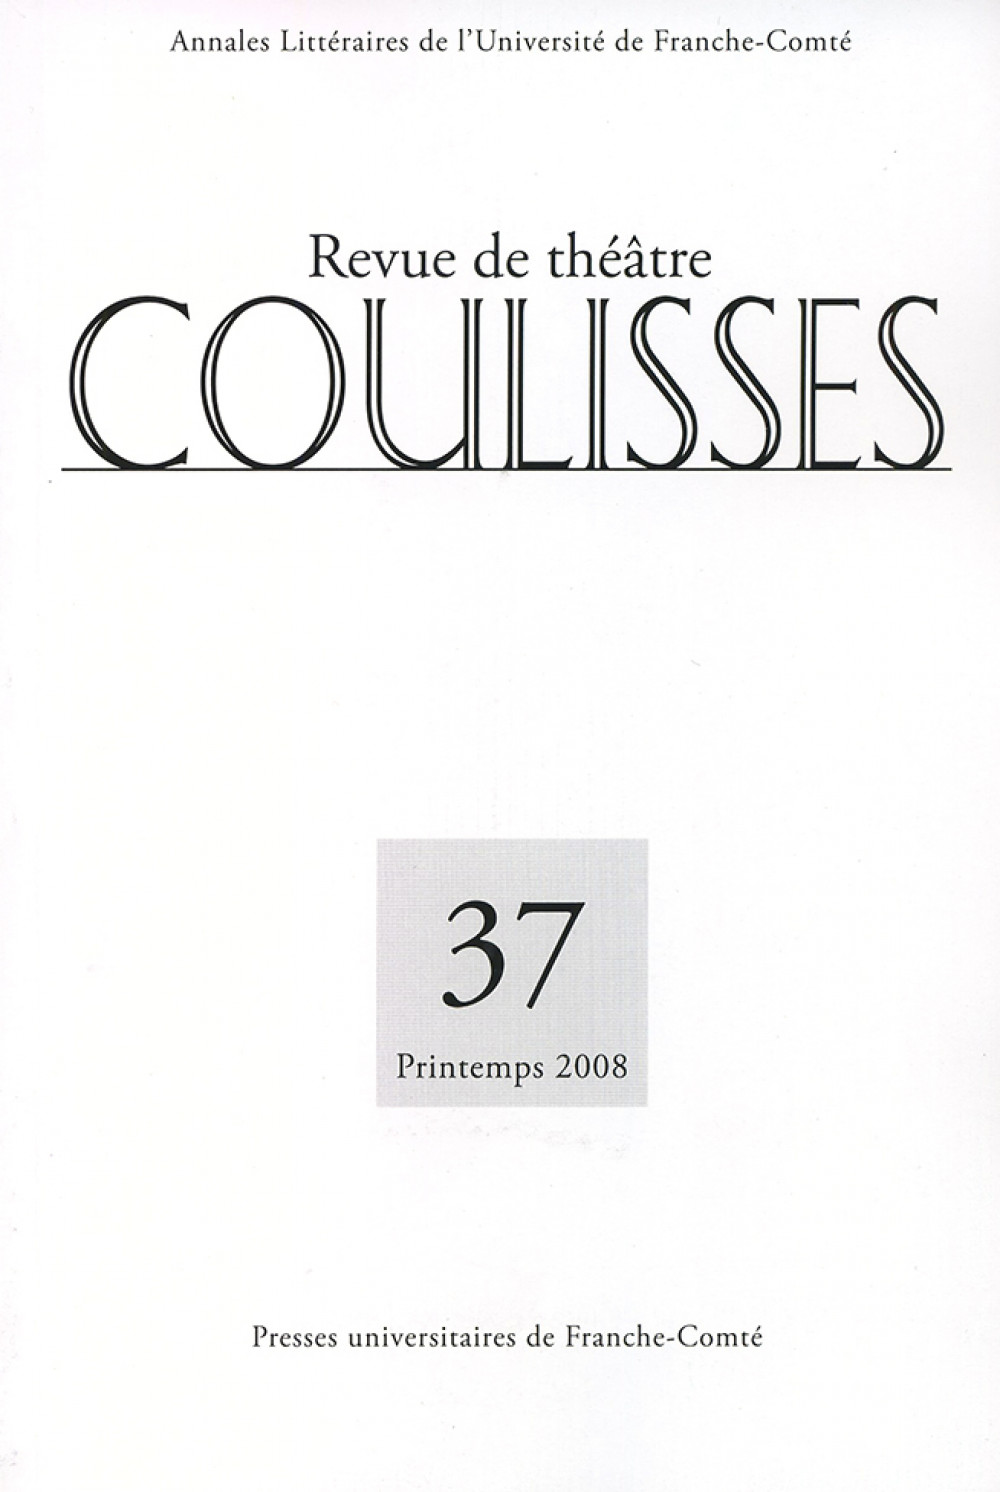 Coulisses 37